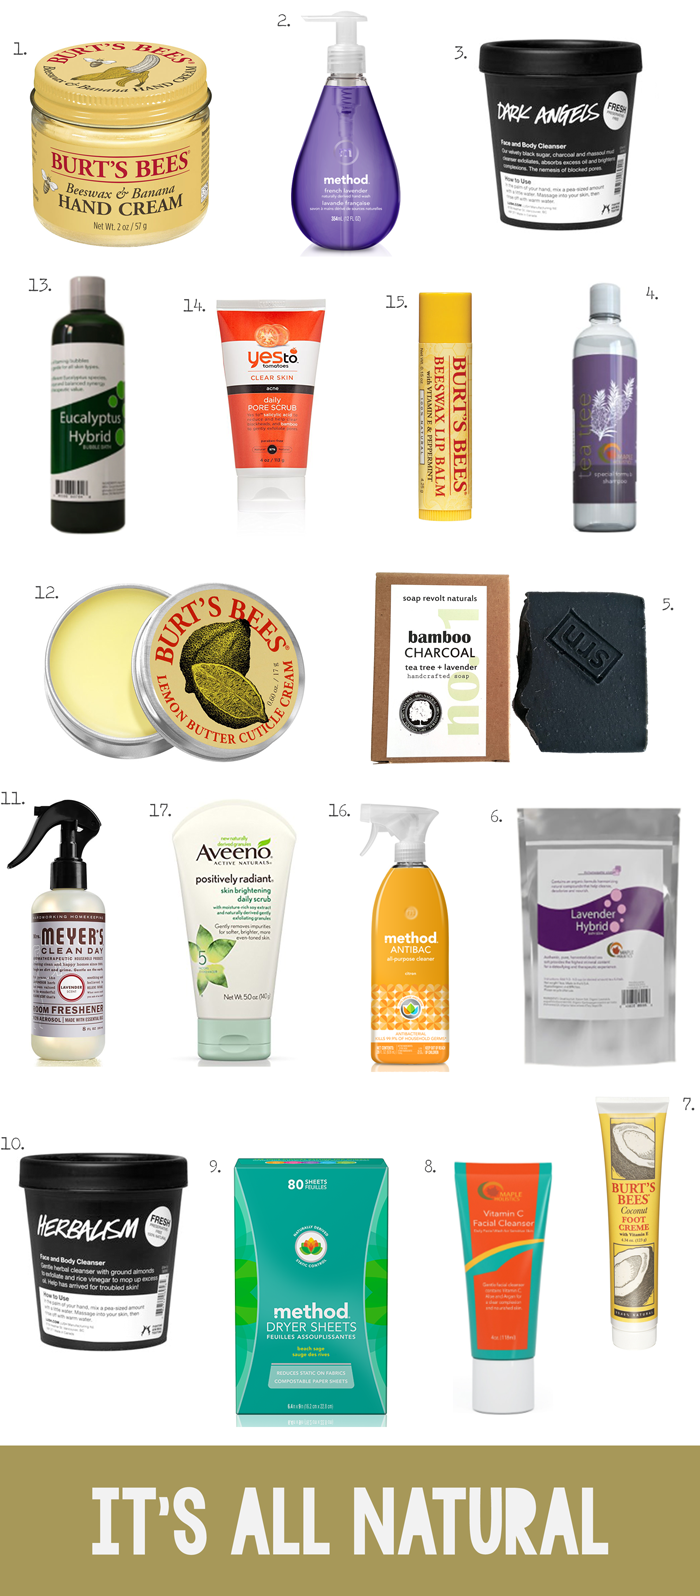 Eco friendly, sustainable, cruelty free, green, holistic beauty, personal care and cleaning products, shopping trends